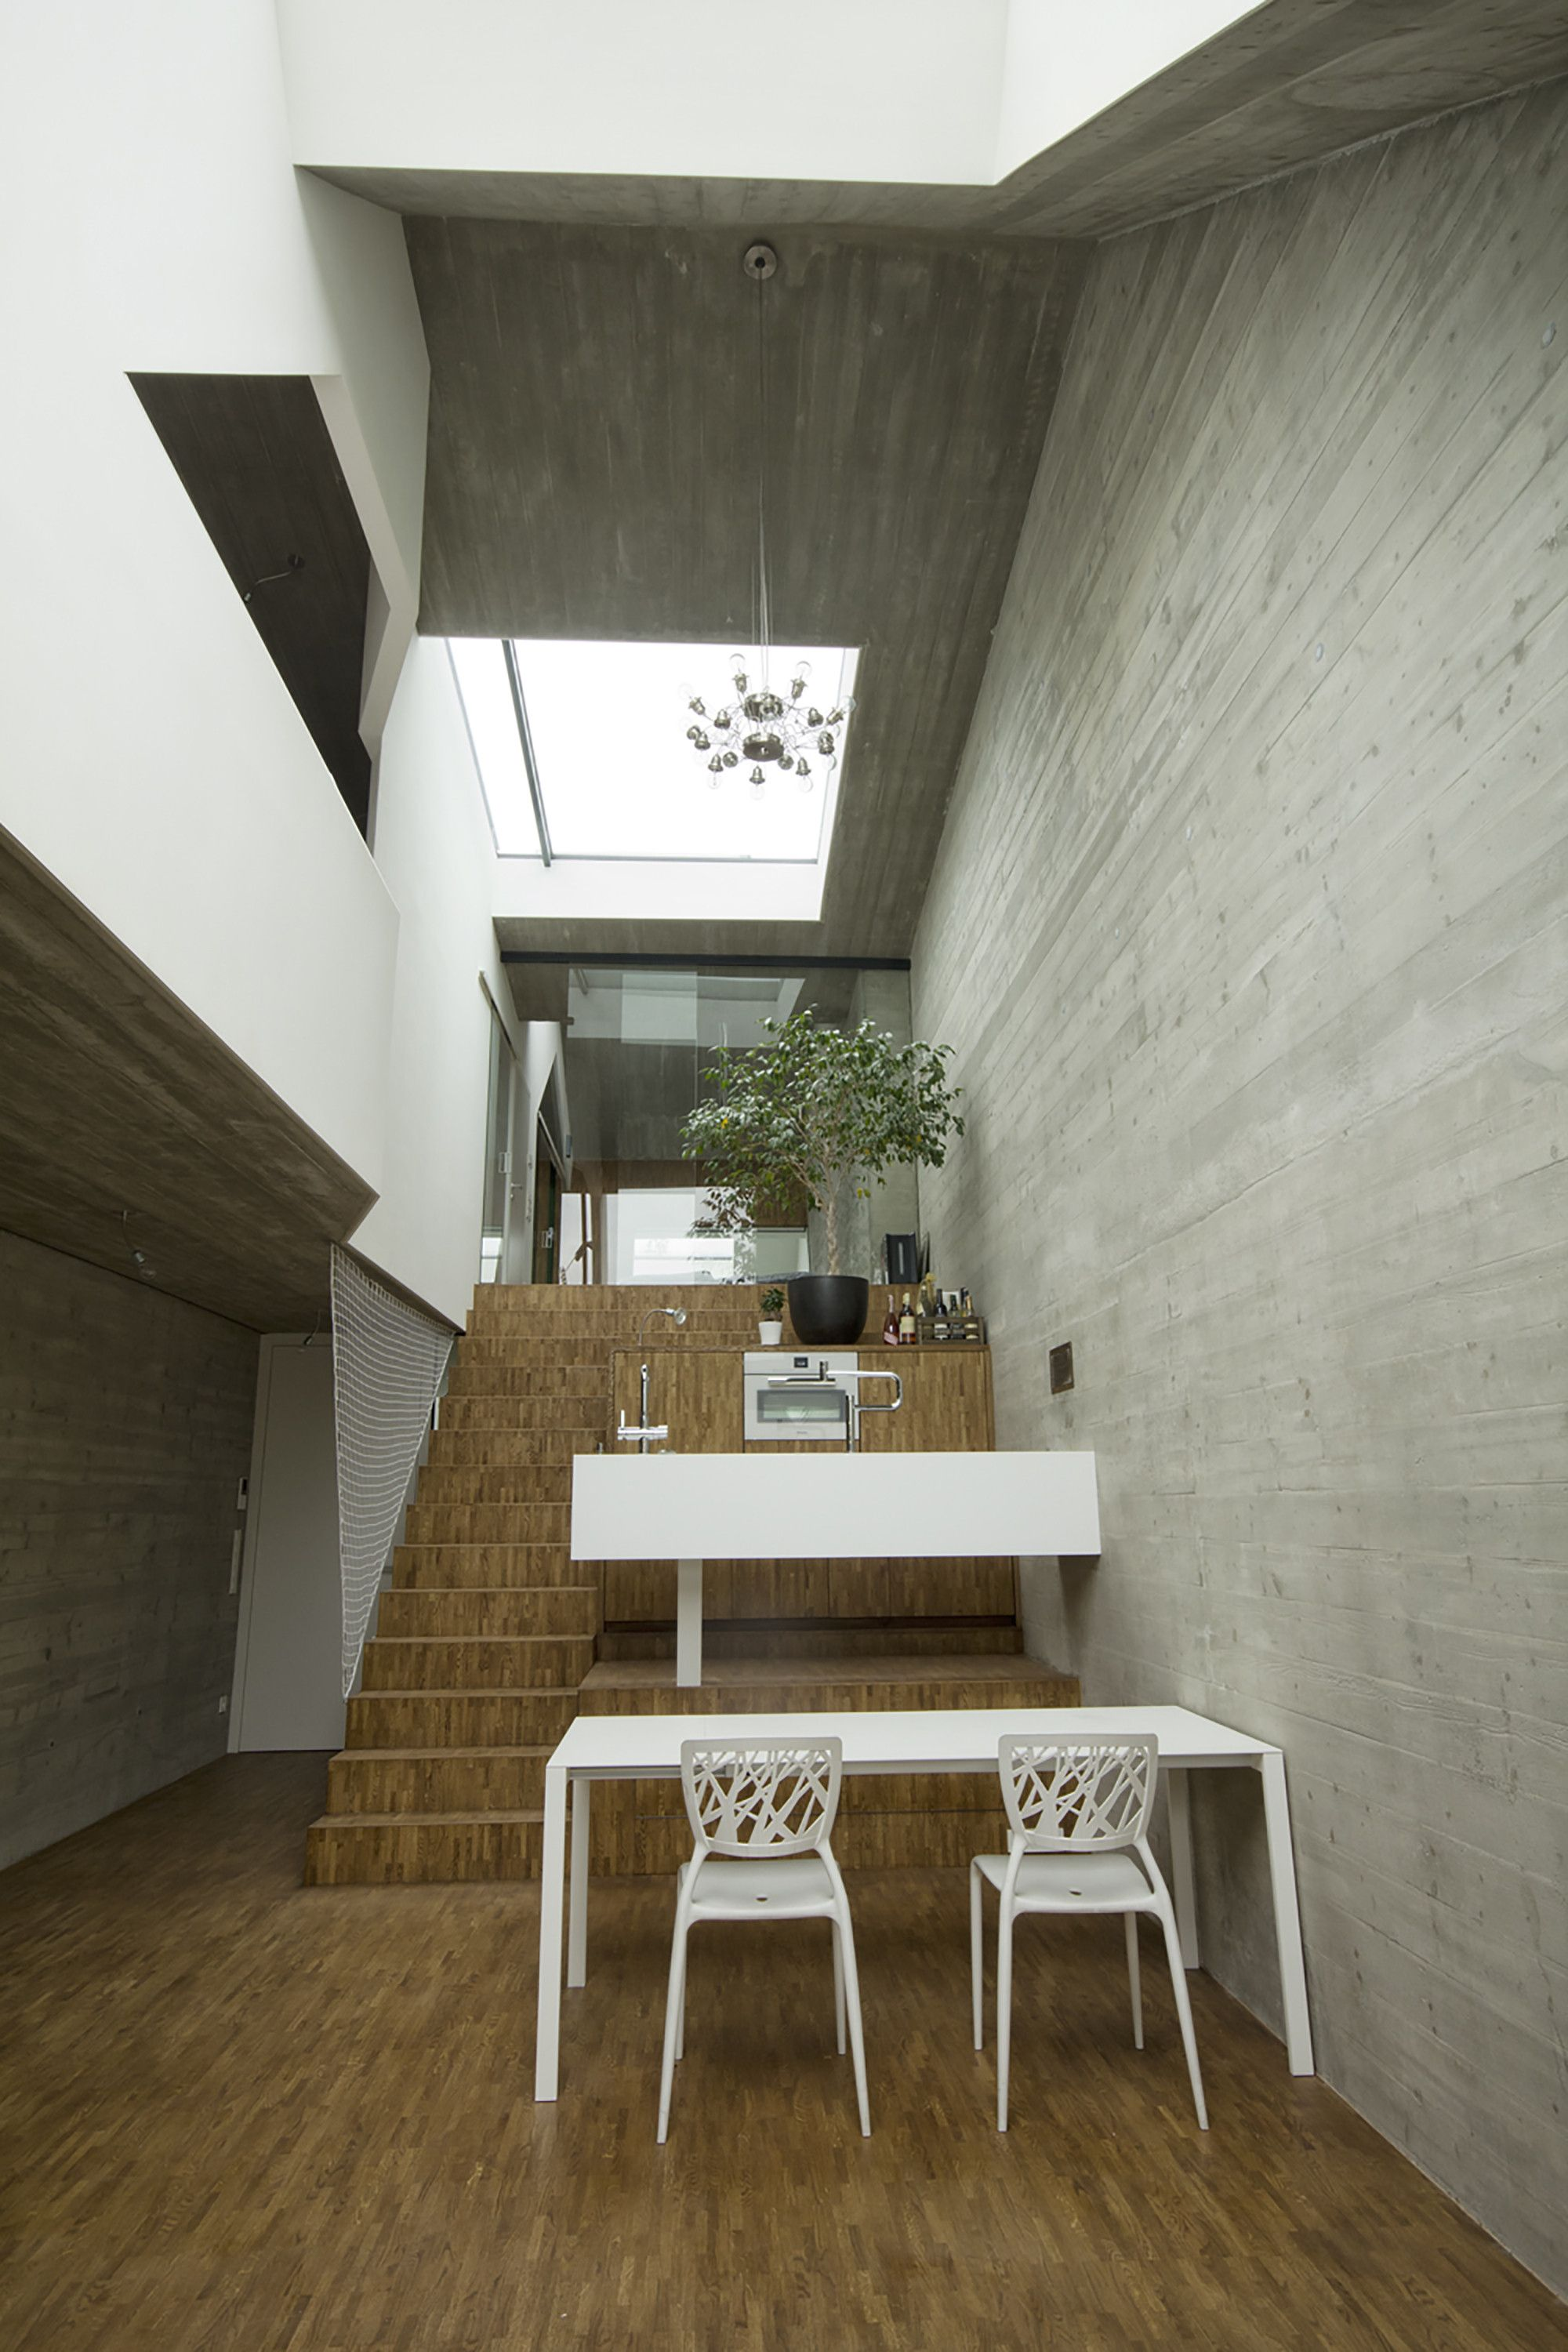 Captivating Gallery Of CJ5 House / Caramel Architekten   6 Ideas